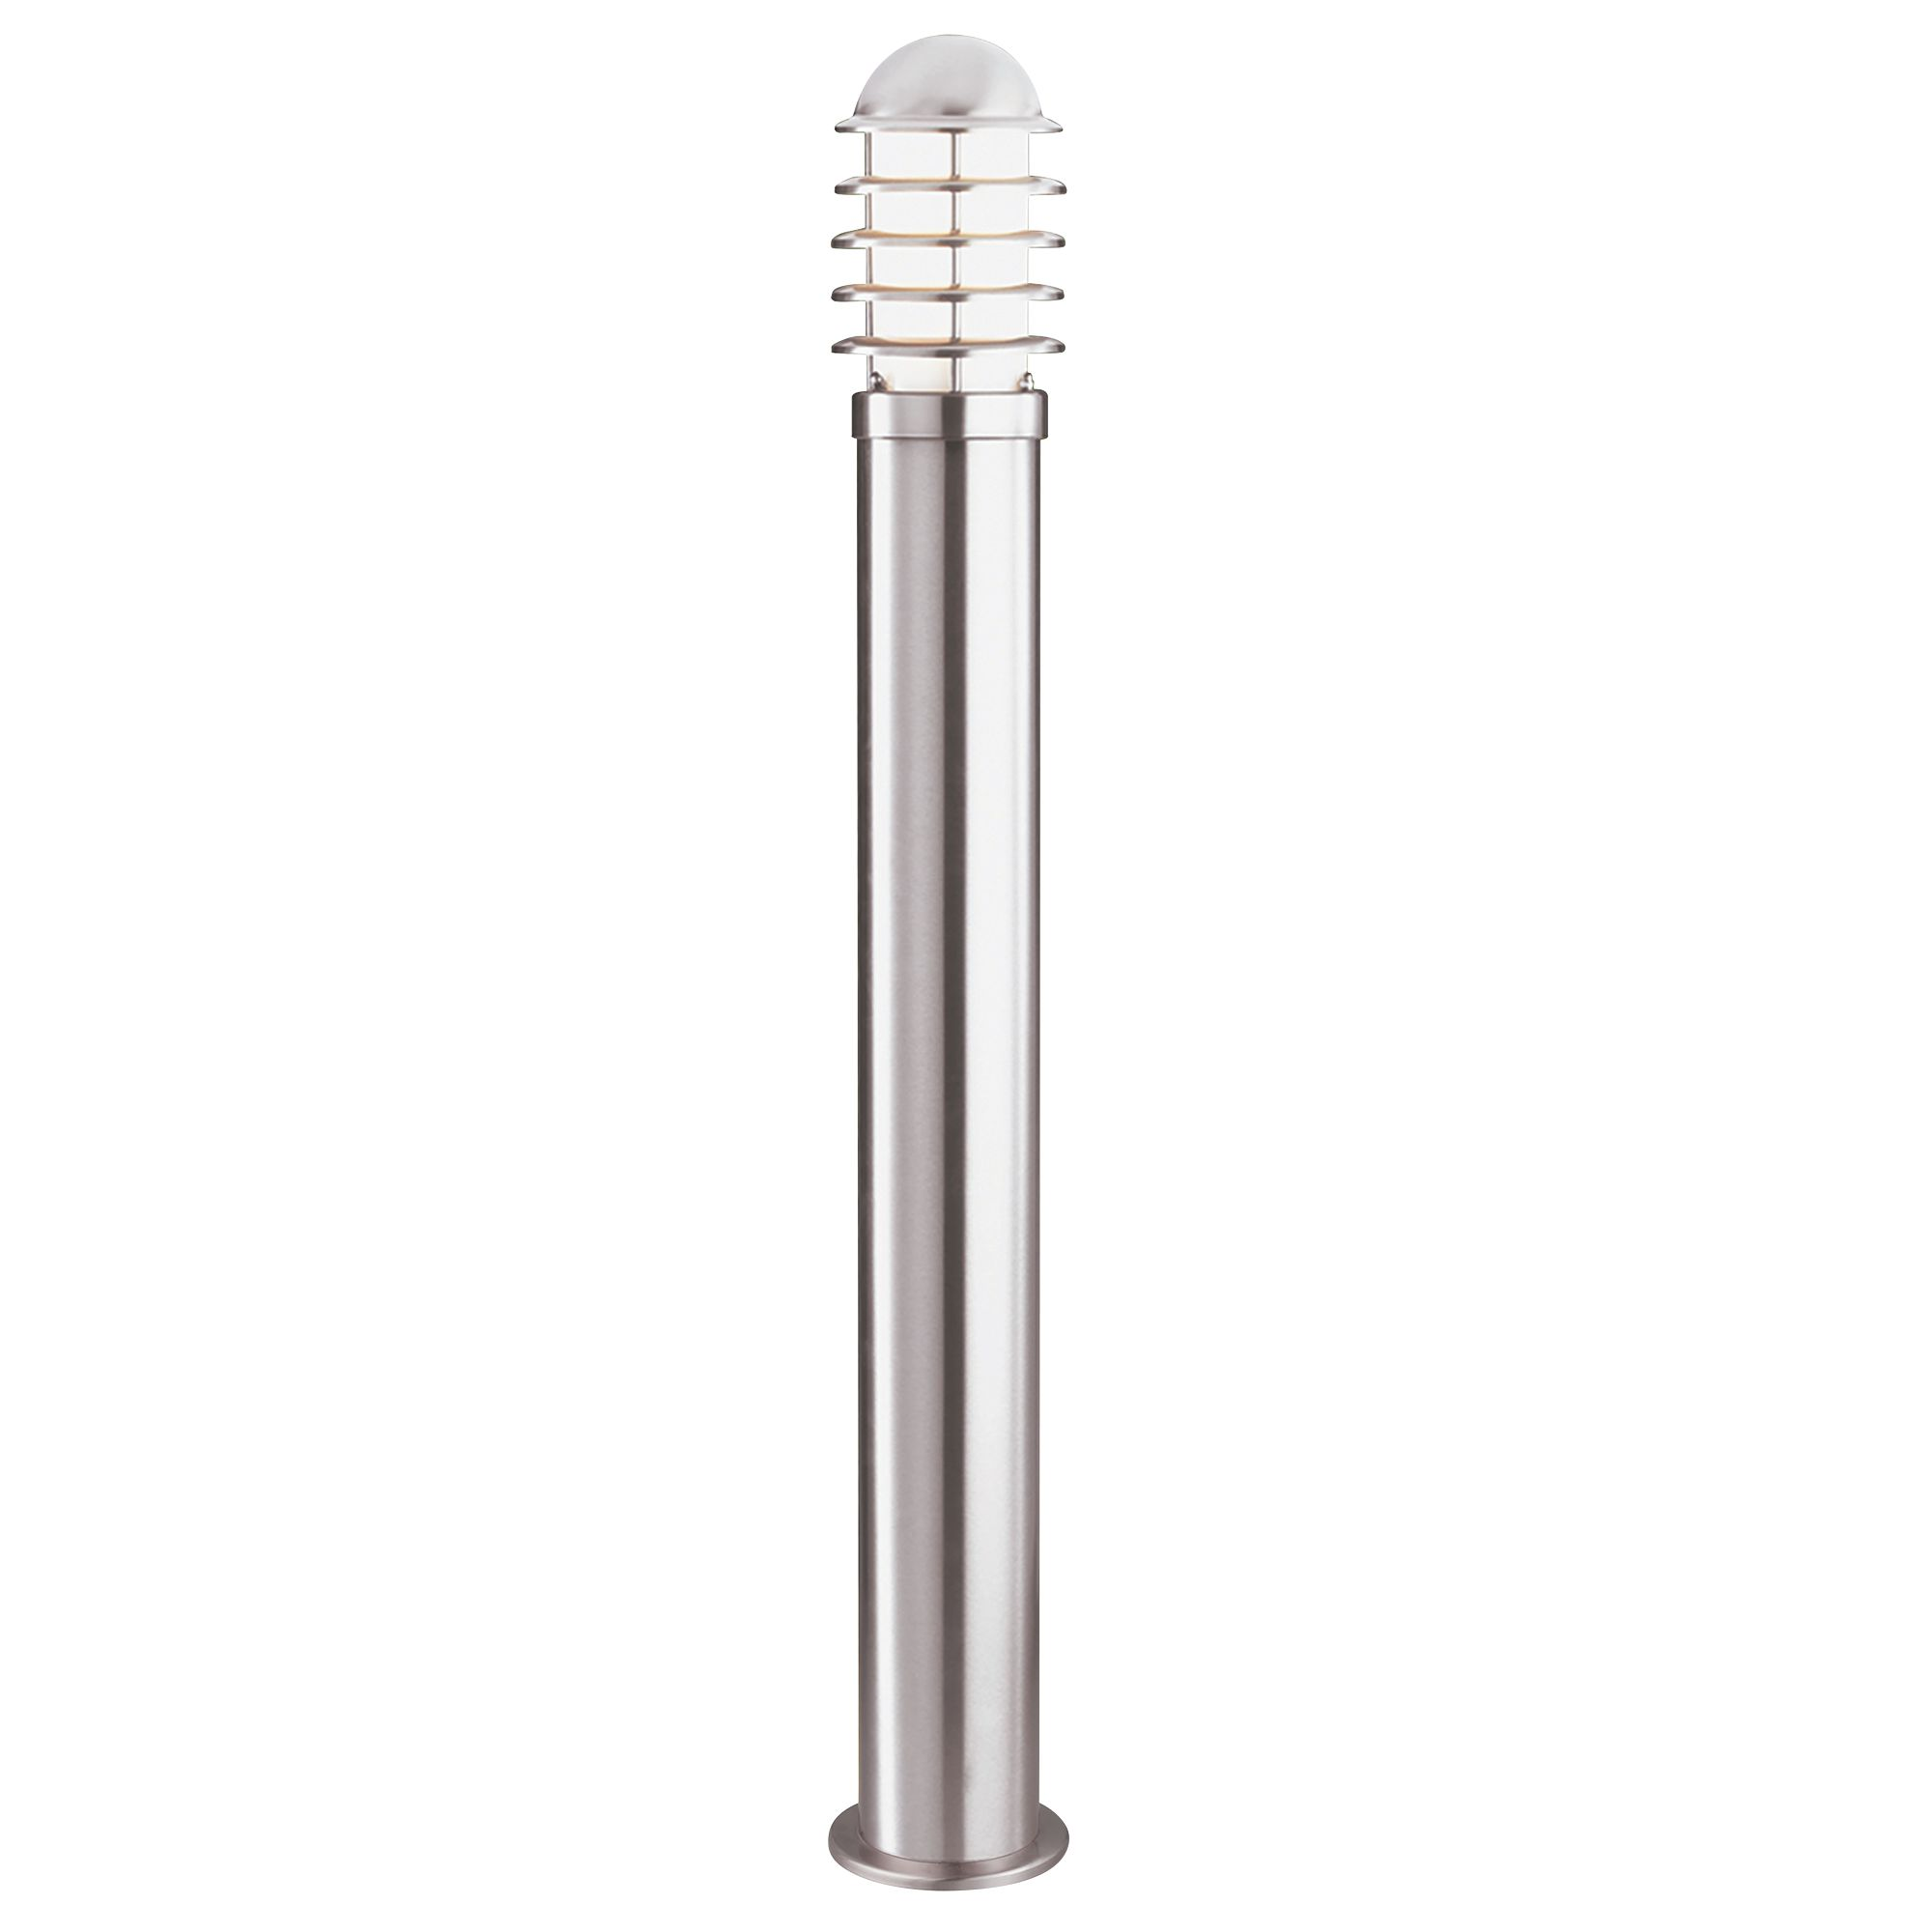 Stainless Steel Ip44 Outdoor Bollard Light With Polycarbonate Diffuser